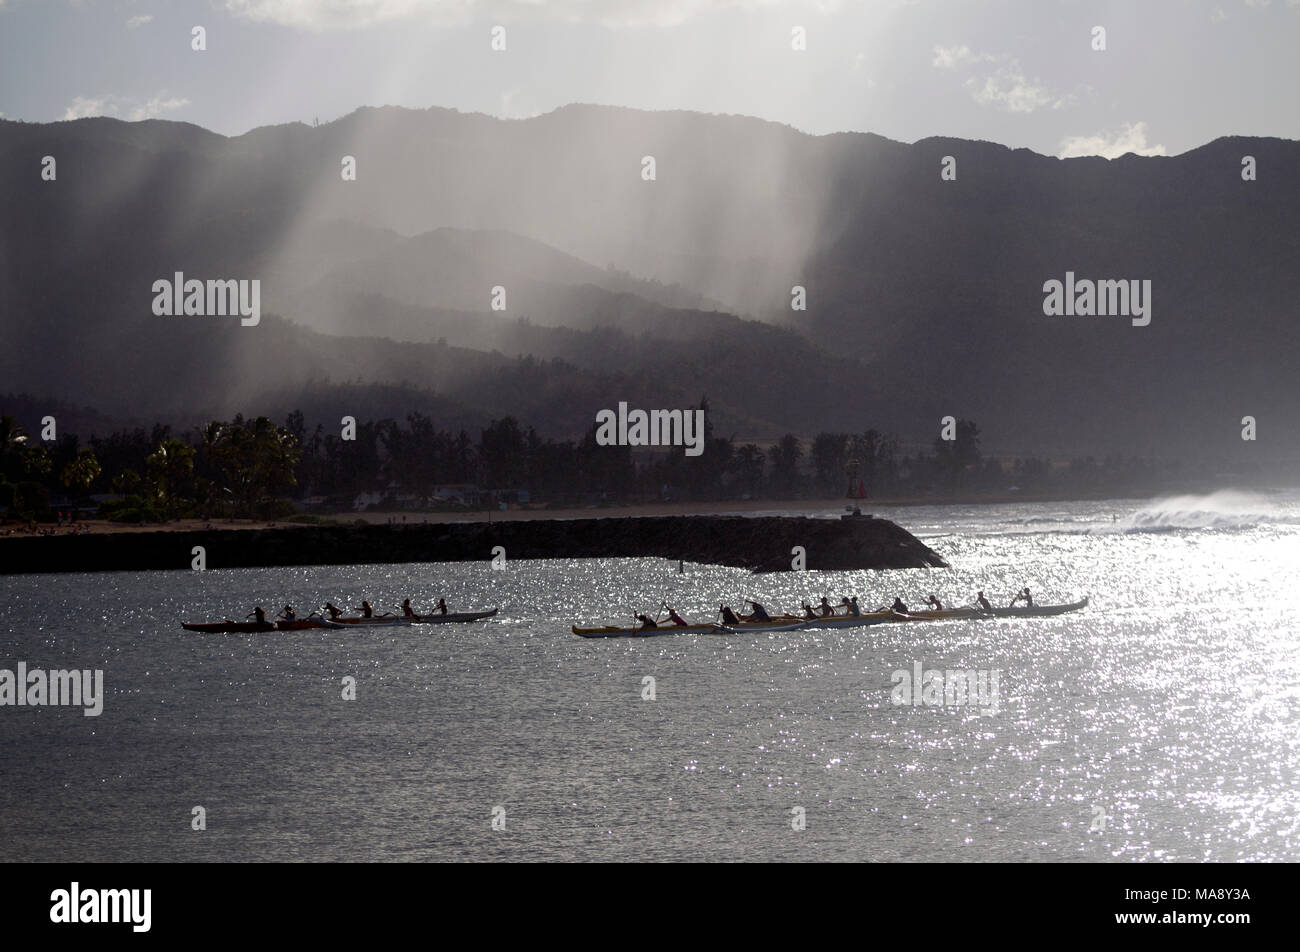 Outrigger canoes on the North Shore of Oahu near Haleiwa. - Stock Image